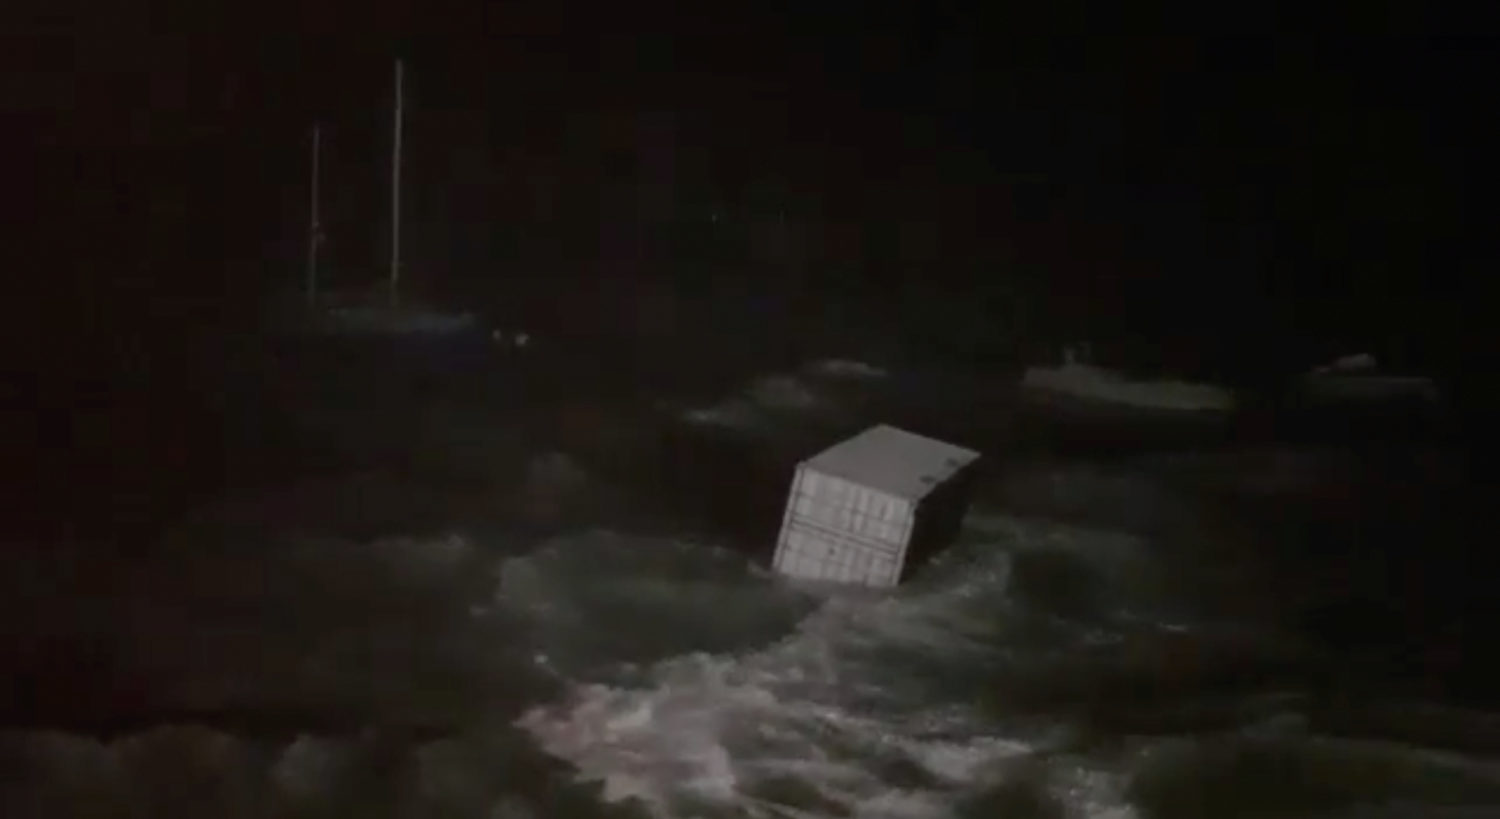 FILE PHOTO: A cargo container floats at sea during storm in Hamilton, Bermuda September 18, 2019 in this still picture obtained from social media video. ALEXANDRE DOWLING via REUTERS